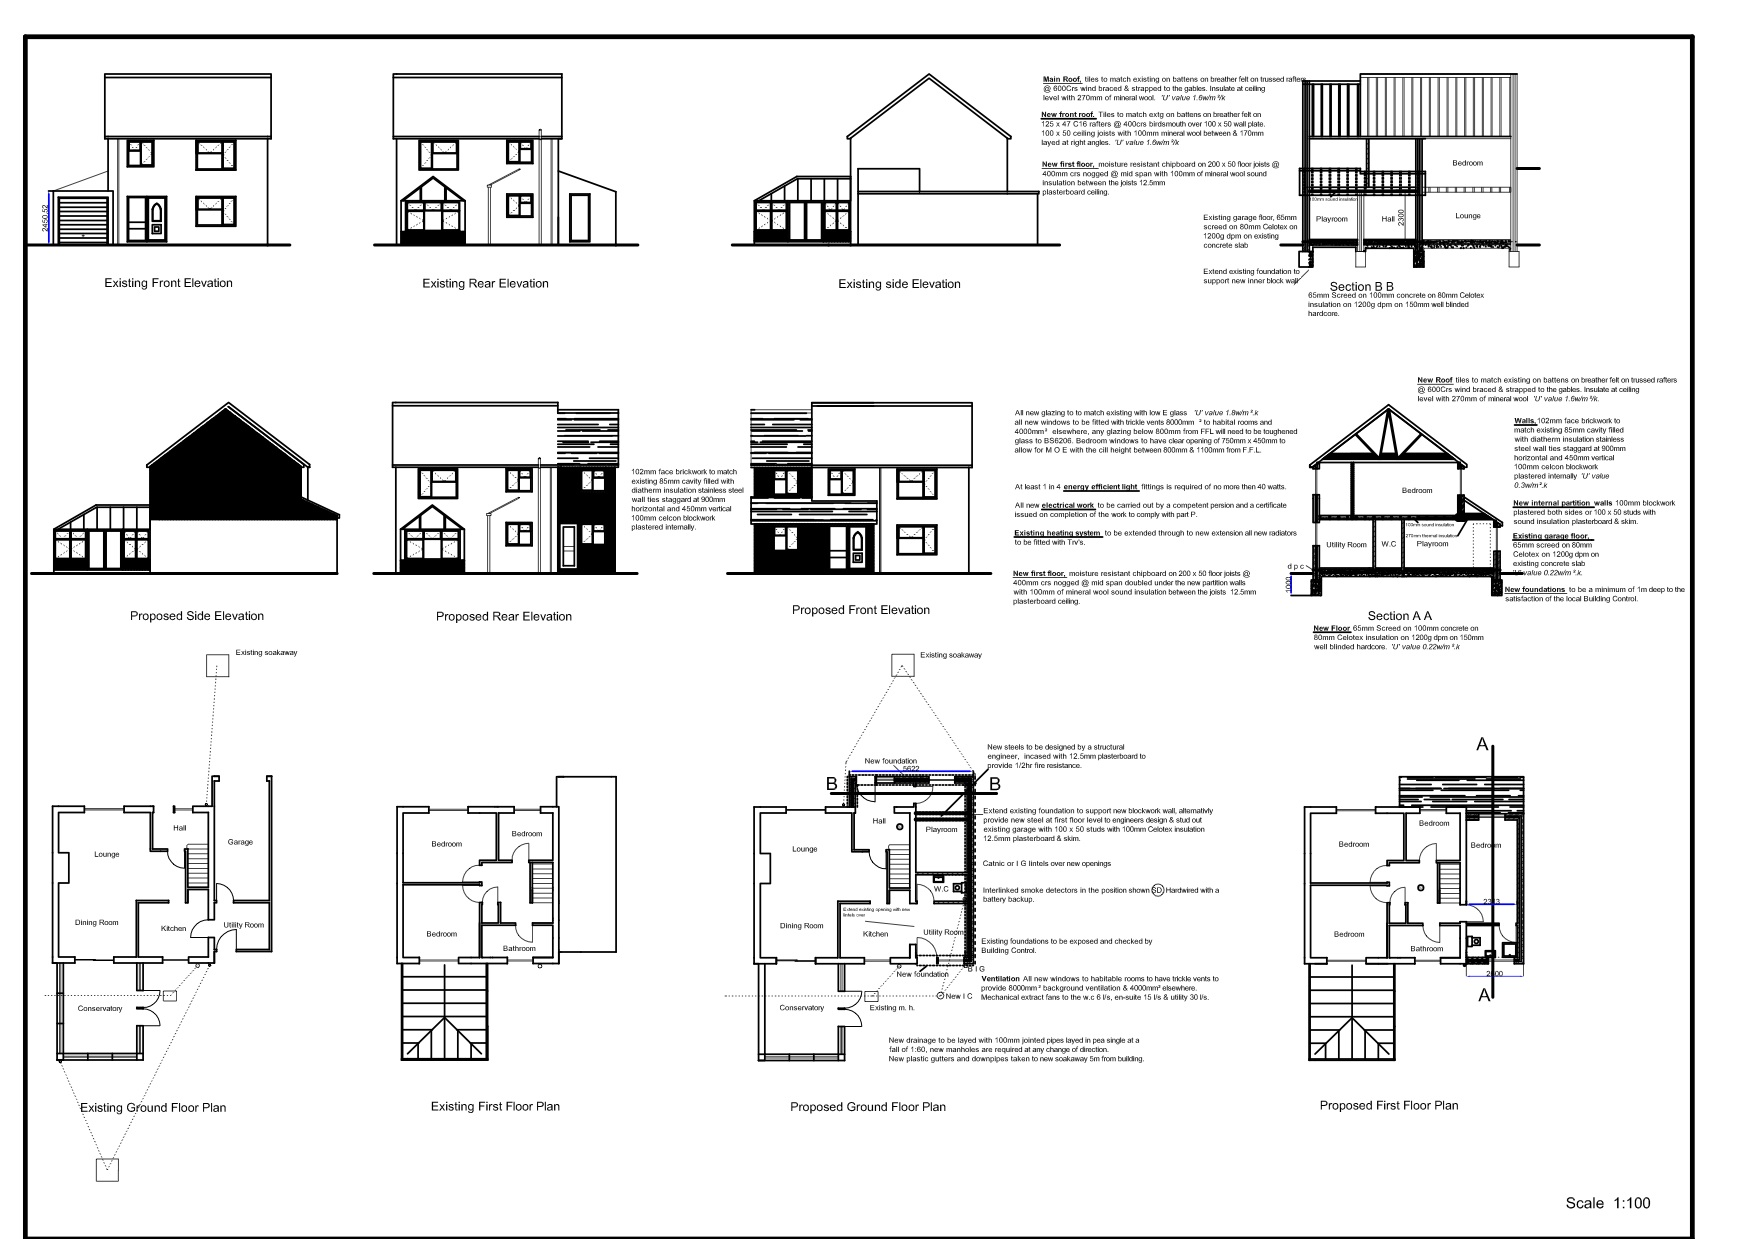 Building Elevation Plan : Ah building design sample plans